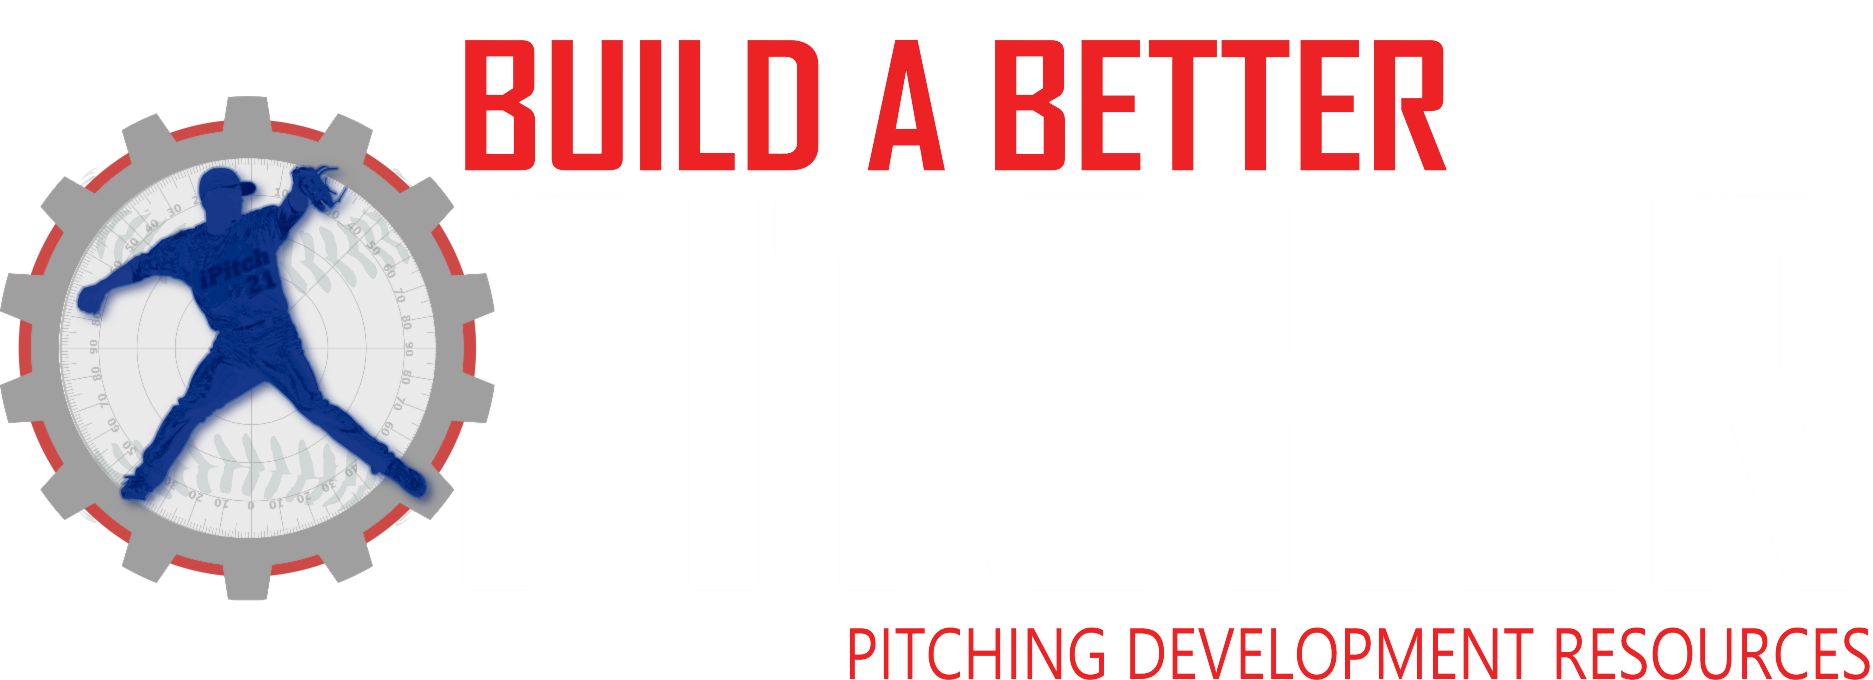 BuildaBetterPitcher.com